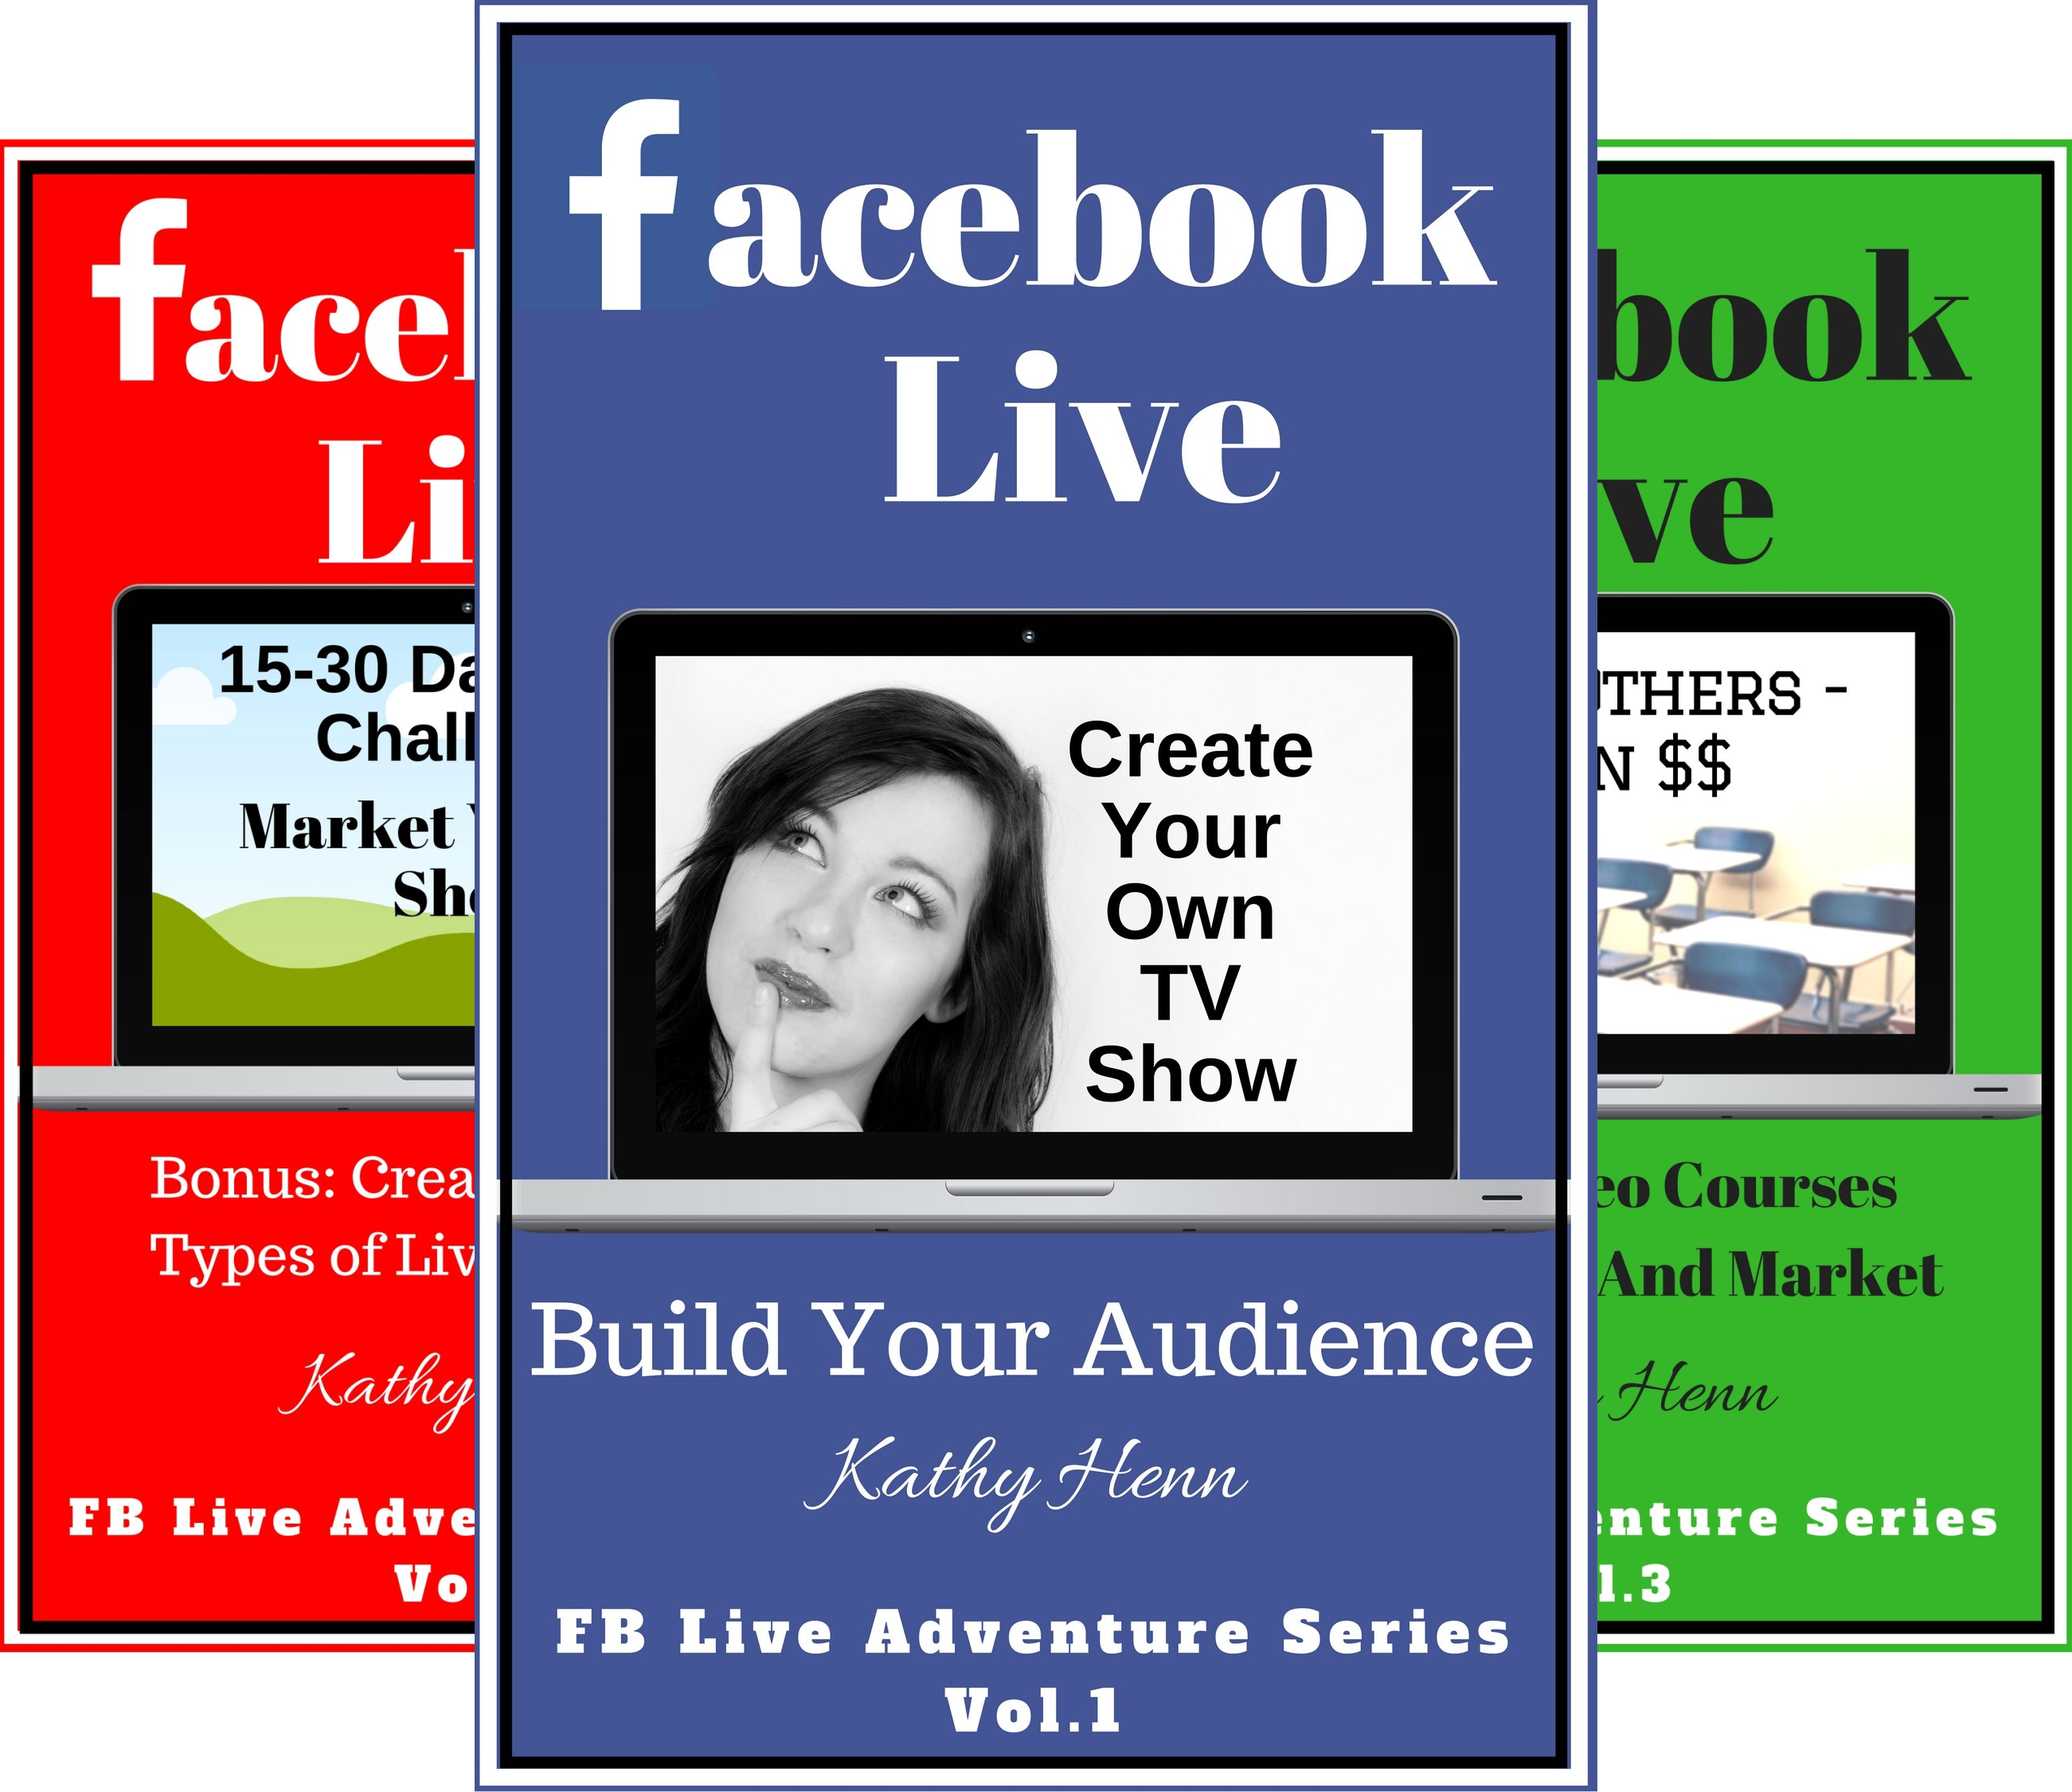 FB Live Adventure Series (7 Book Series)